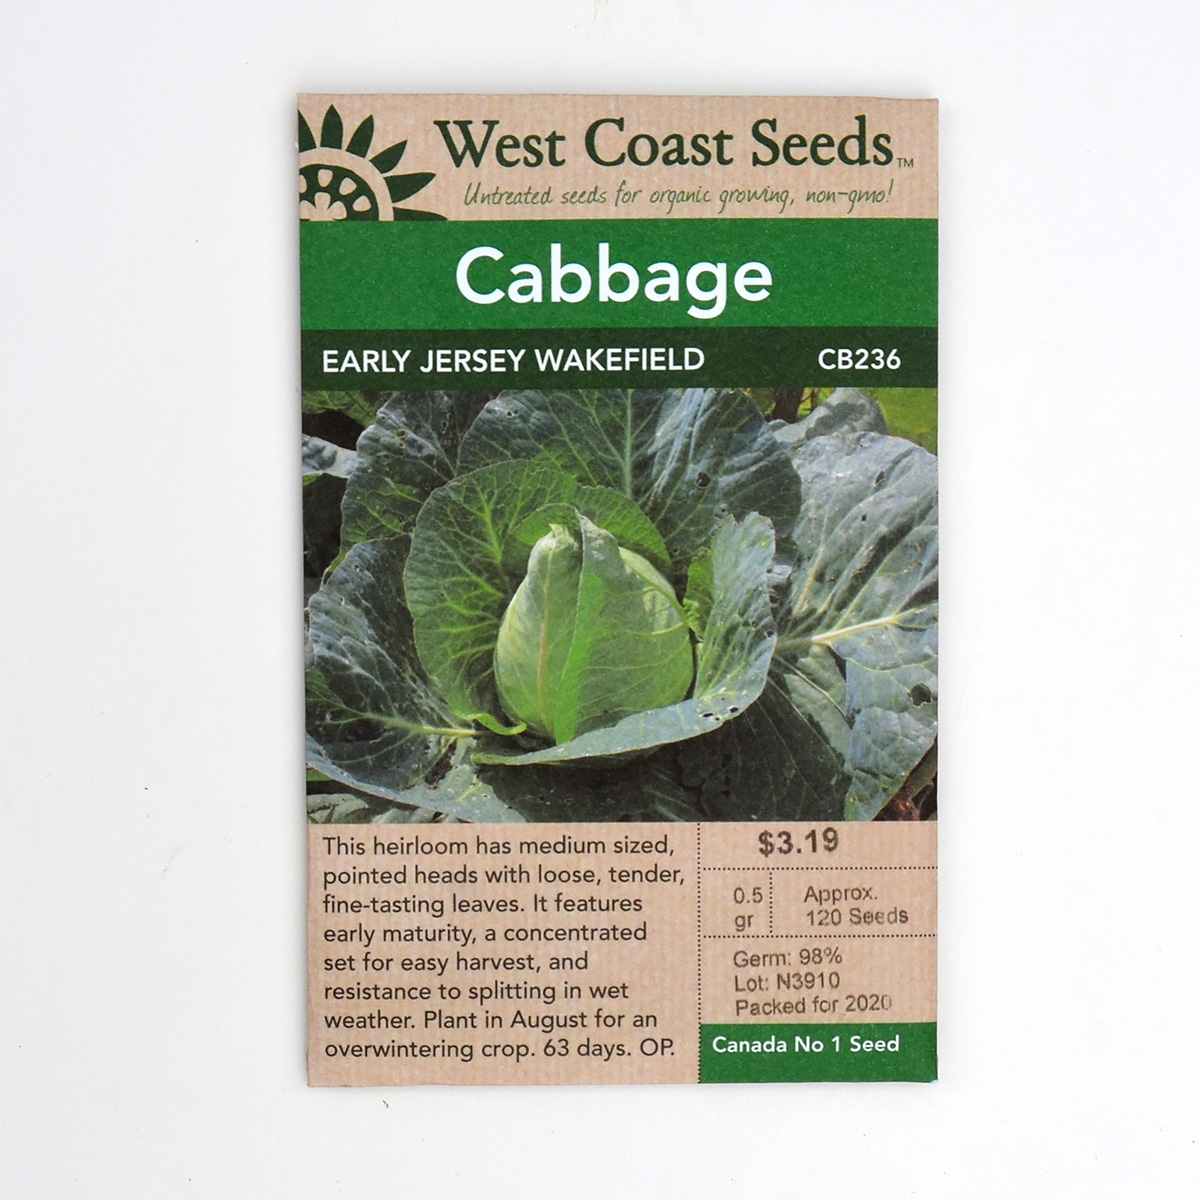 Cabbage Early Jersey Wakefield Seeds CB236